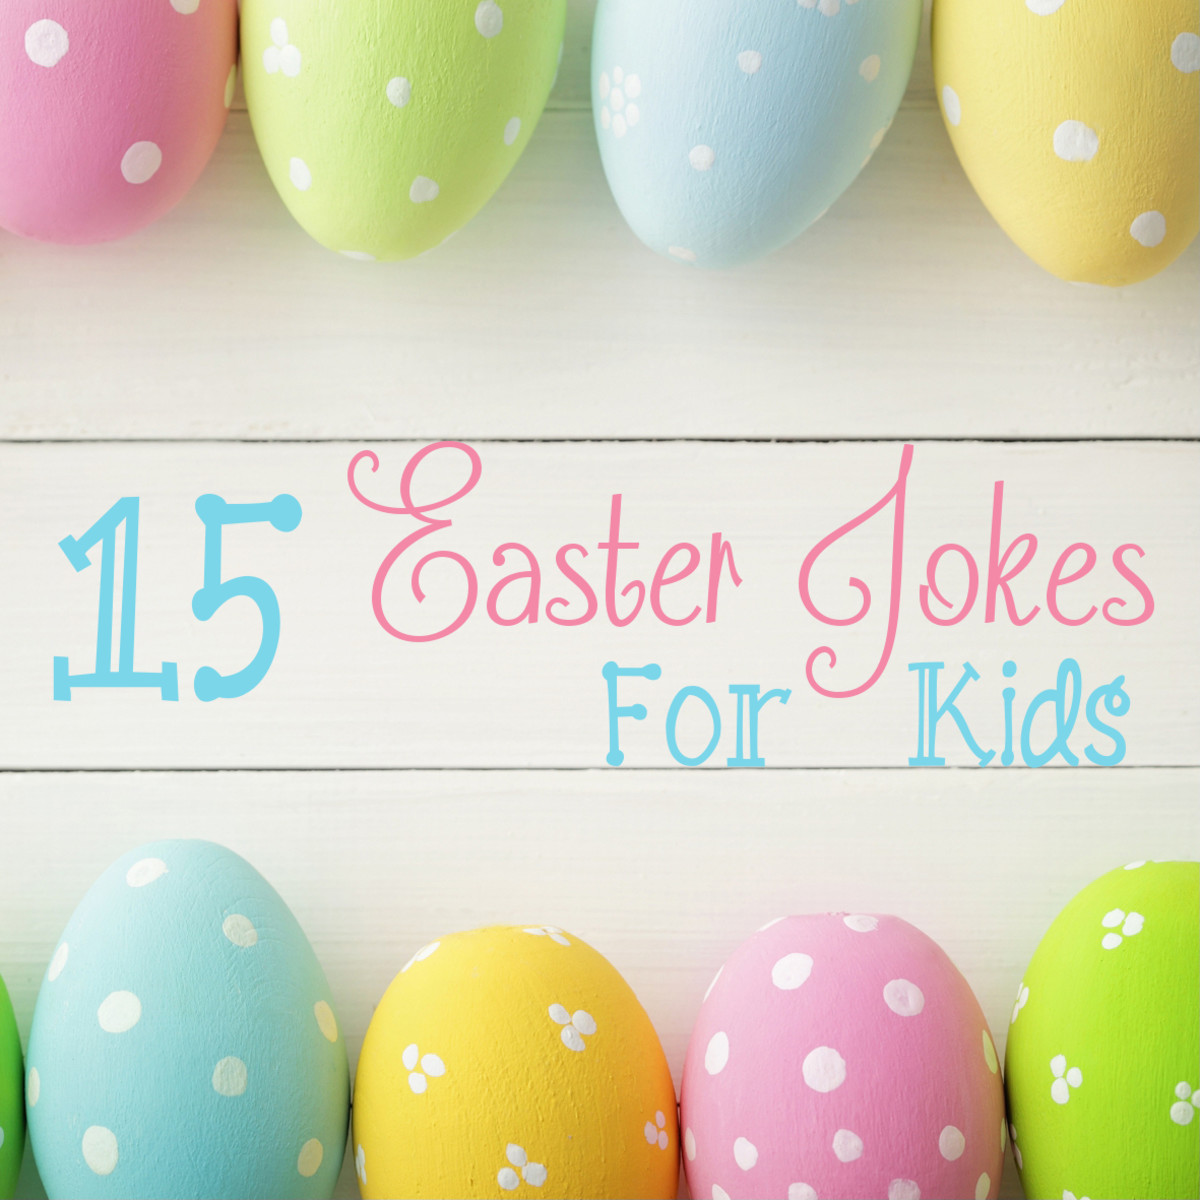 Entertain your kids with a cute Easter joke!